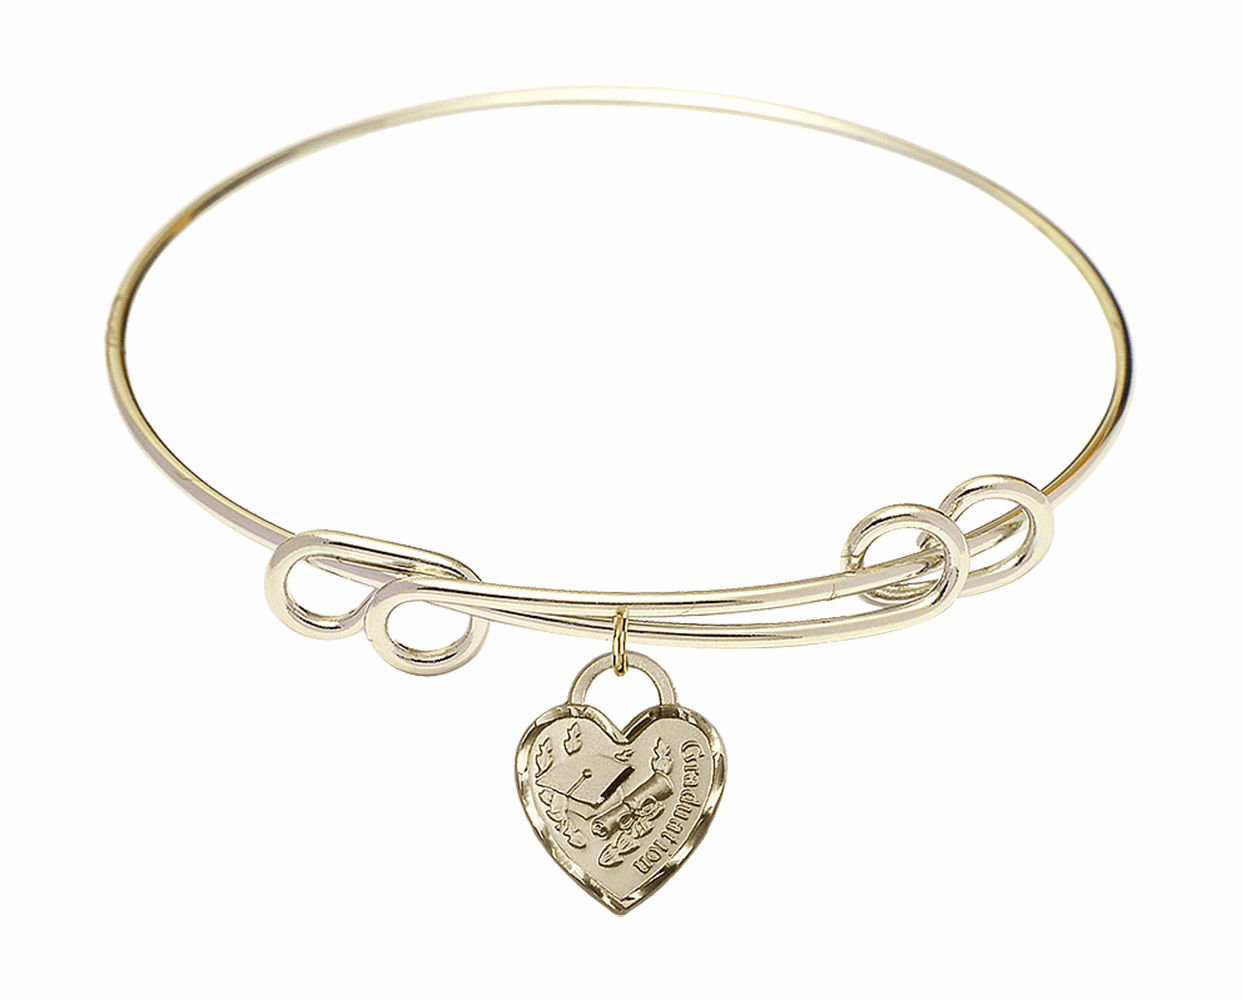 Round Double Loop Bangle Bracelet w/Graduation Heart Charm by Bliss Mfg